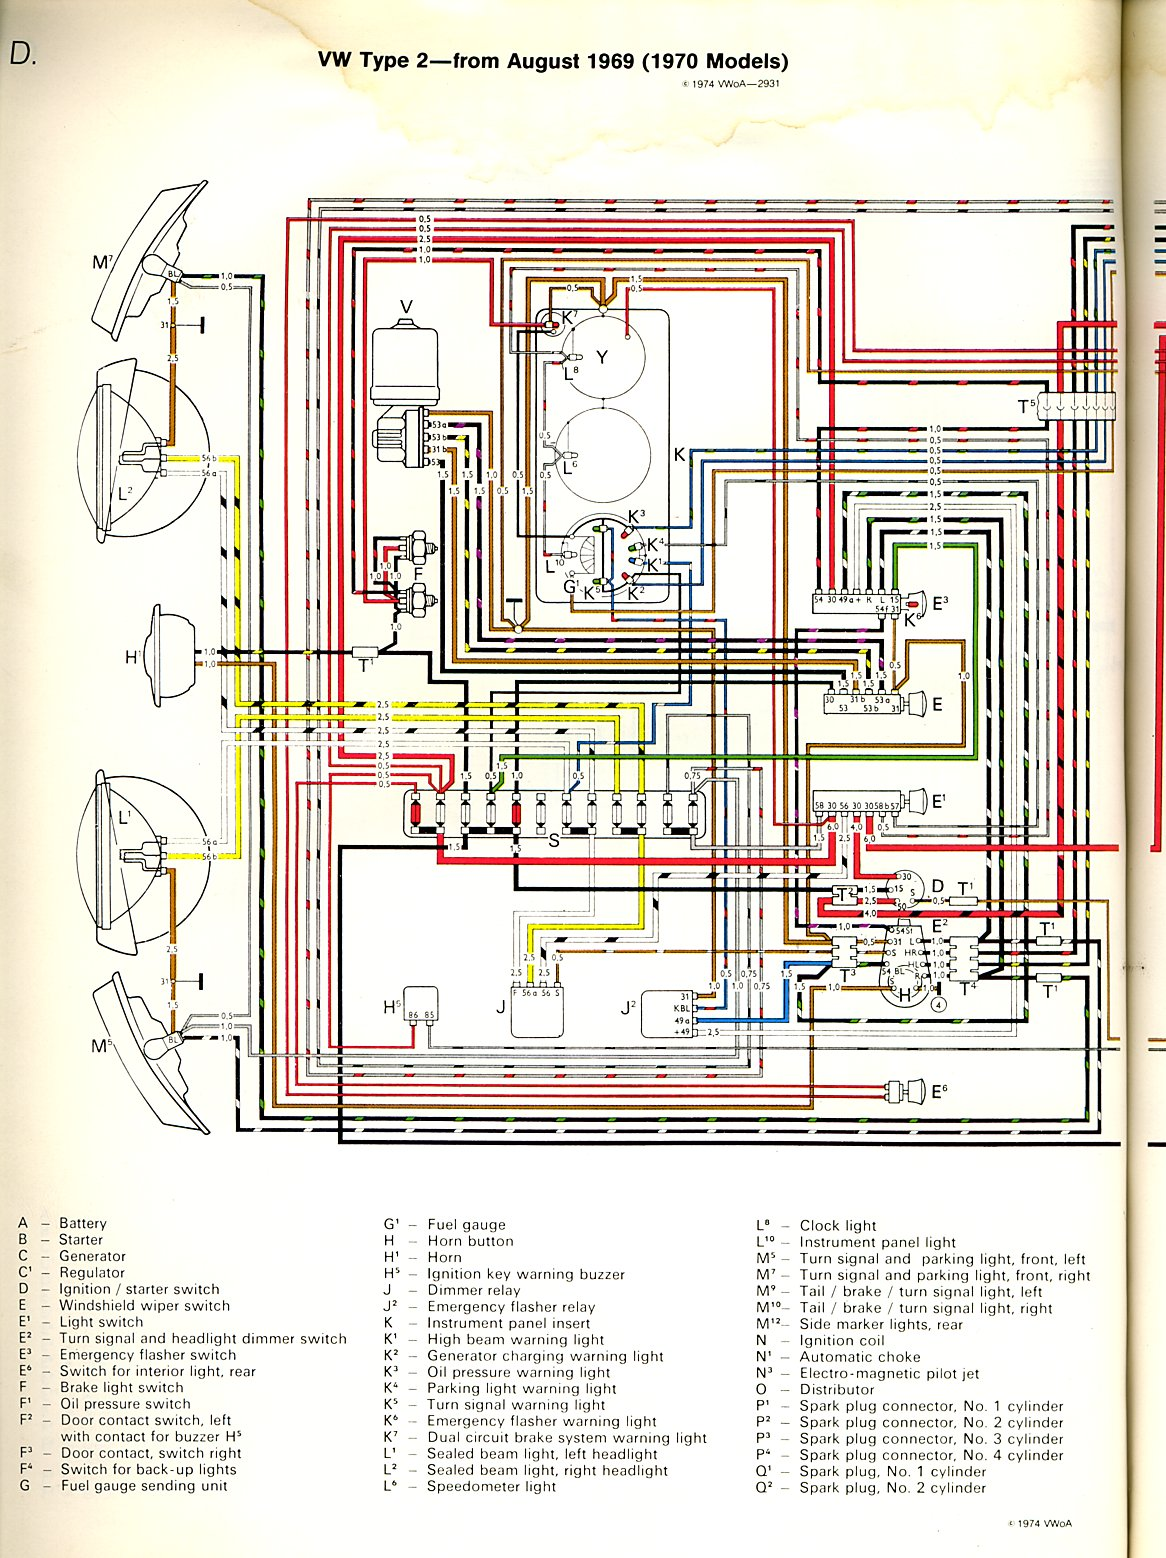 baybus_70a thesamba com type 2 wiring diagrams 69 vw wiring diagram at bayanpartner.co